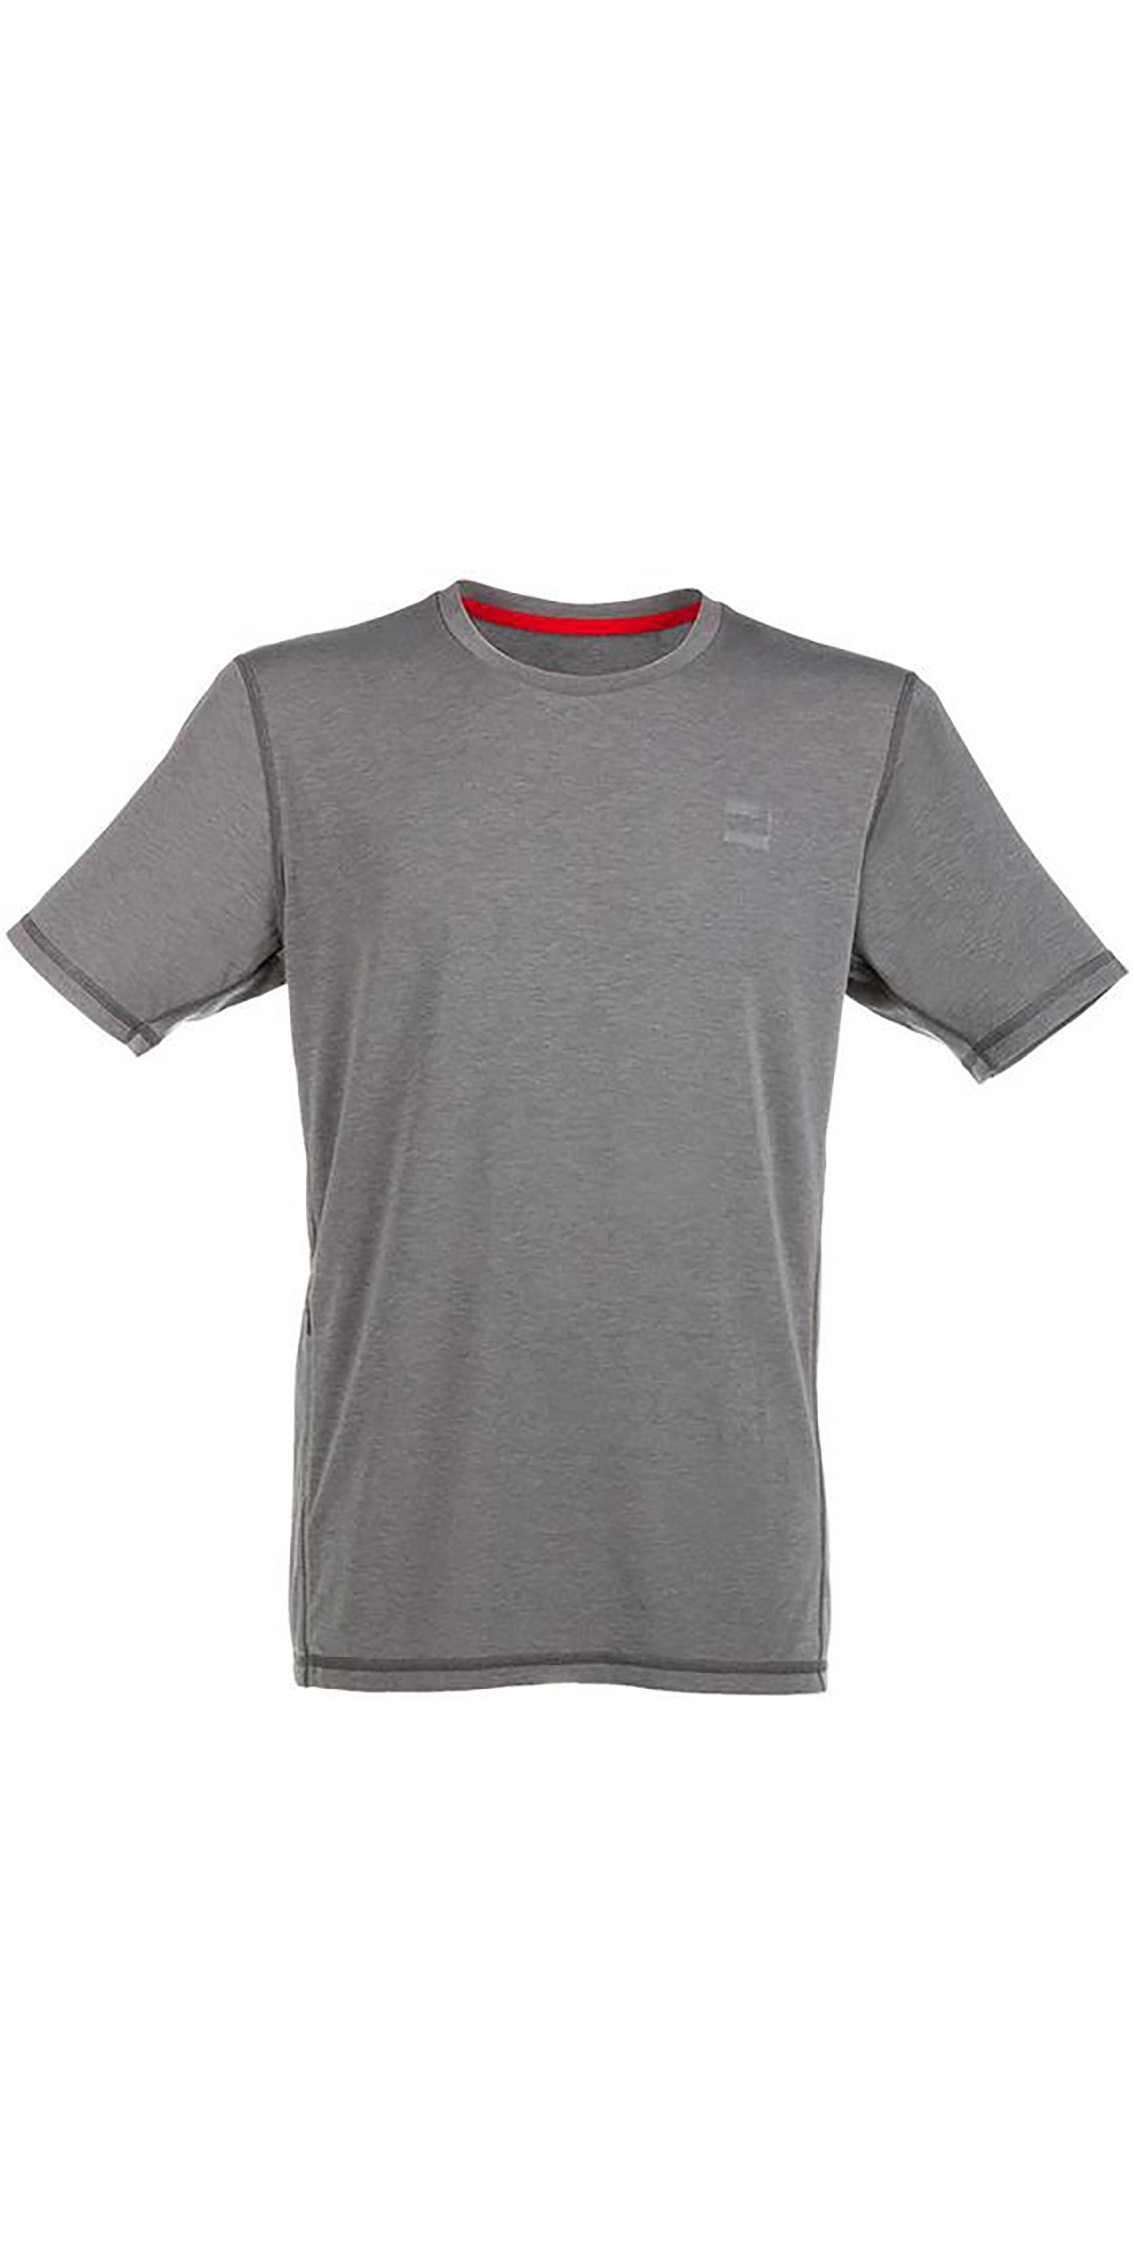 39c791f802 2019 Red Paddle Co Original Mens Performance T-shirt Grey - T-shirts - Mens  - Fashion - by Red Paddle | Wetsuit Outlet